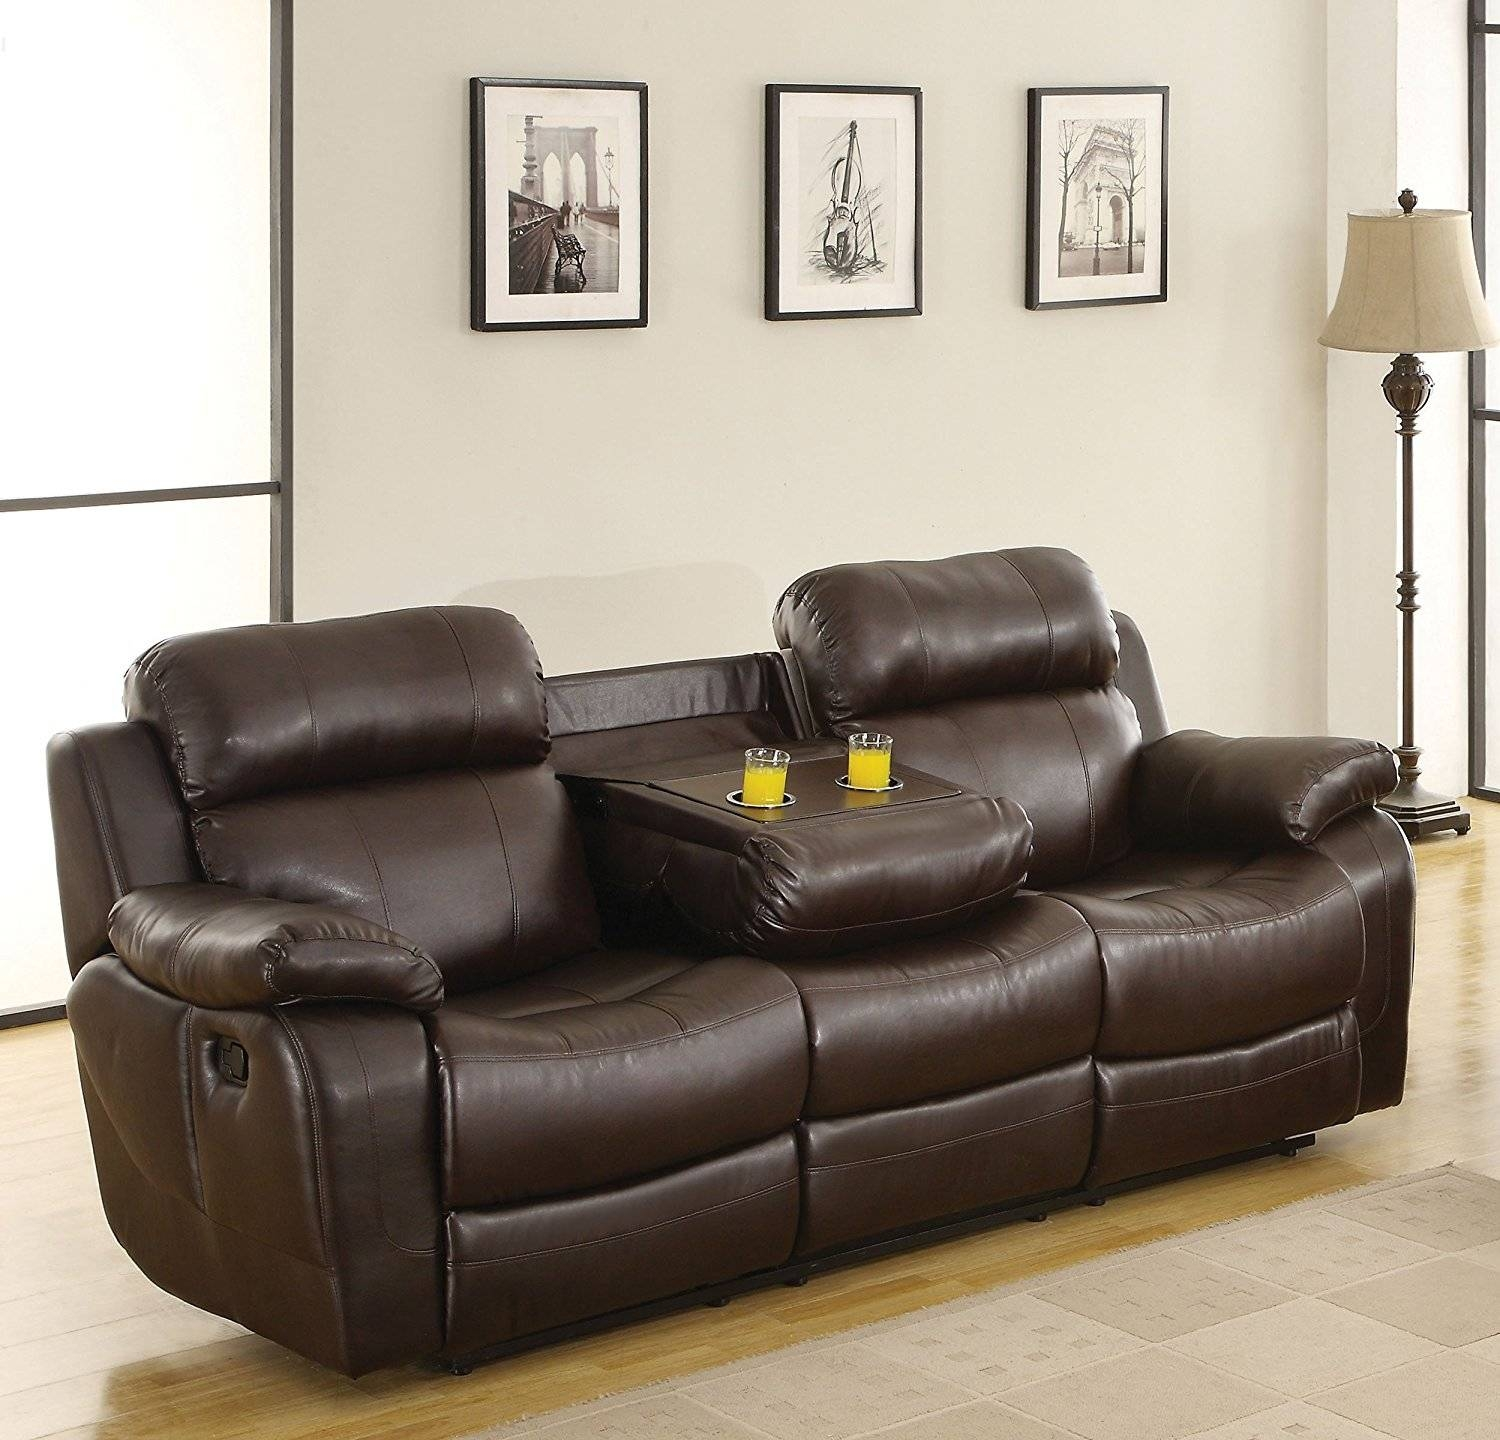 Sofas Center : Reclining Sofas With Consoles Dual Sofa Center in Sofas With Consoles (Image 24 of 30)